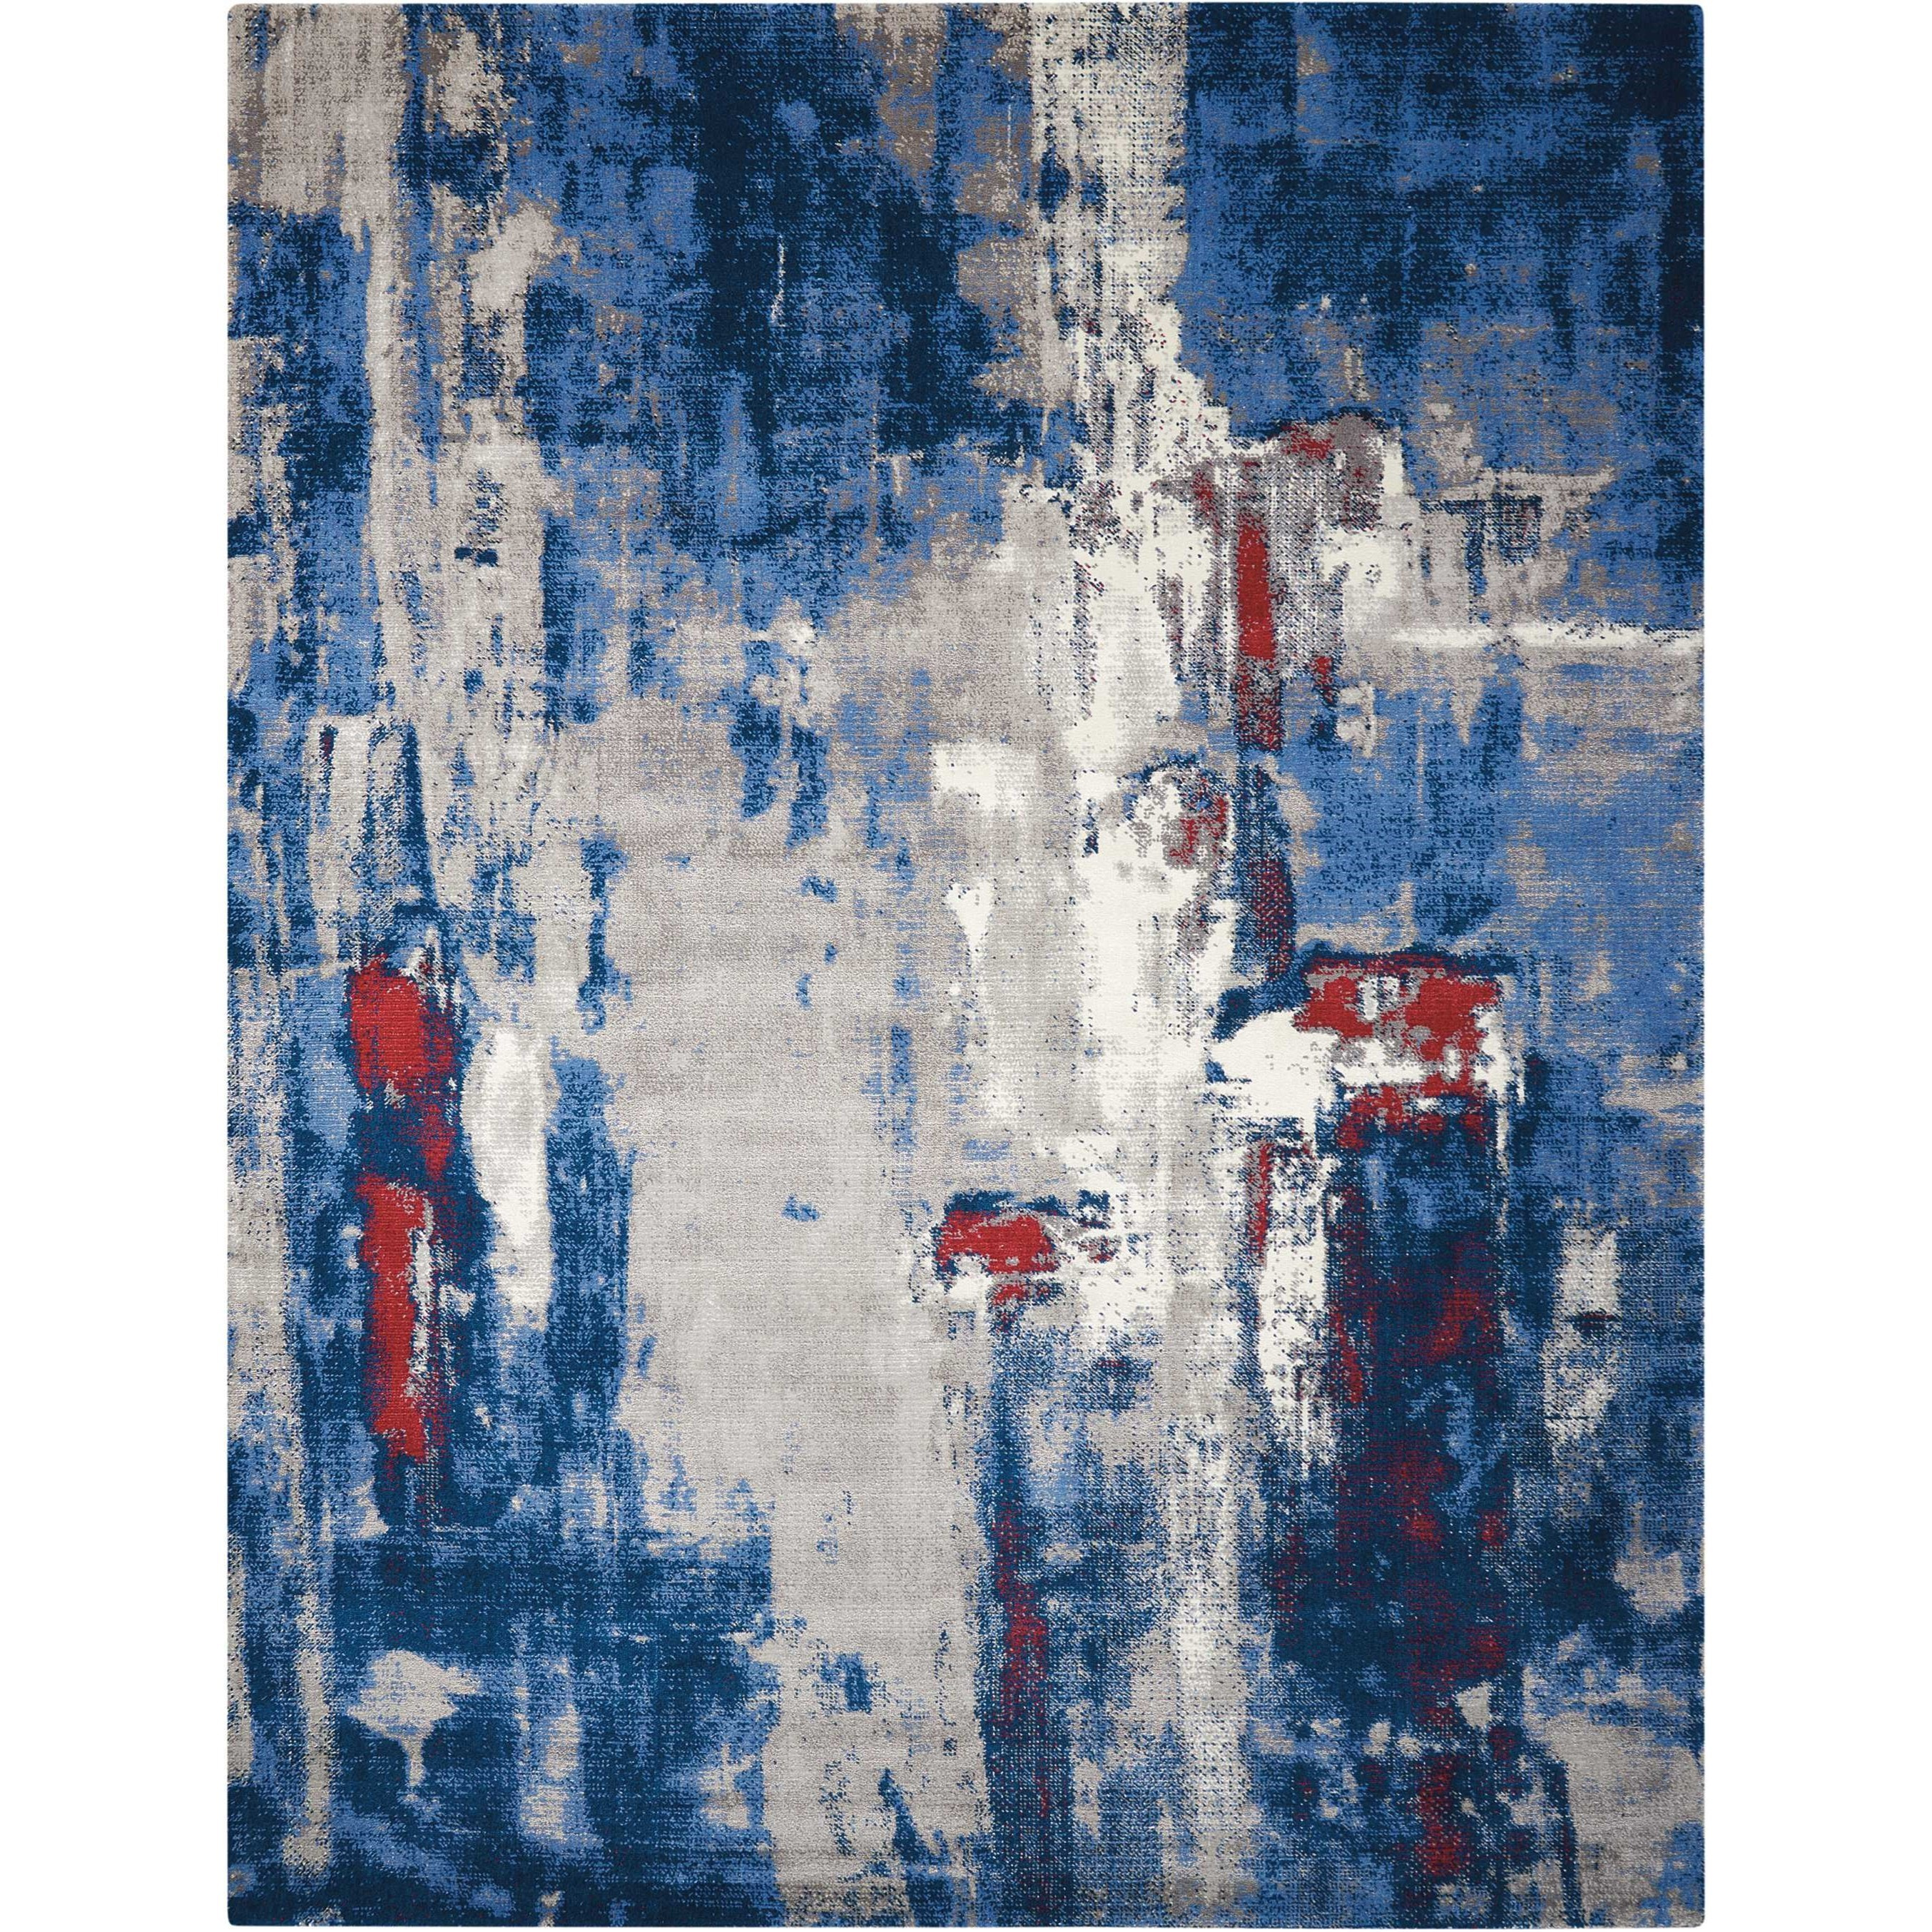 """Twilight1 5'6"""" X 8' Gry/Bl Rug by Nourison at Home Collections Furniture"""